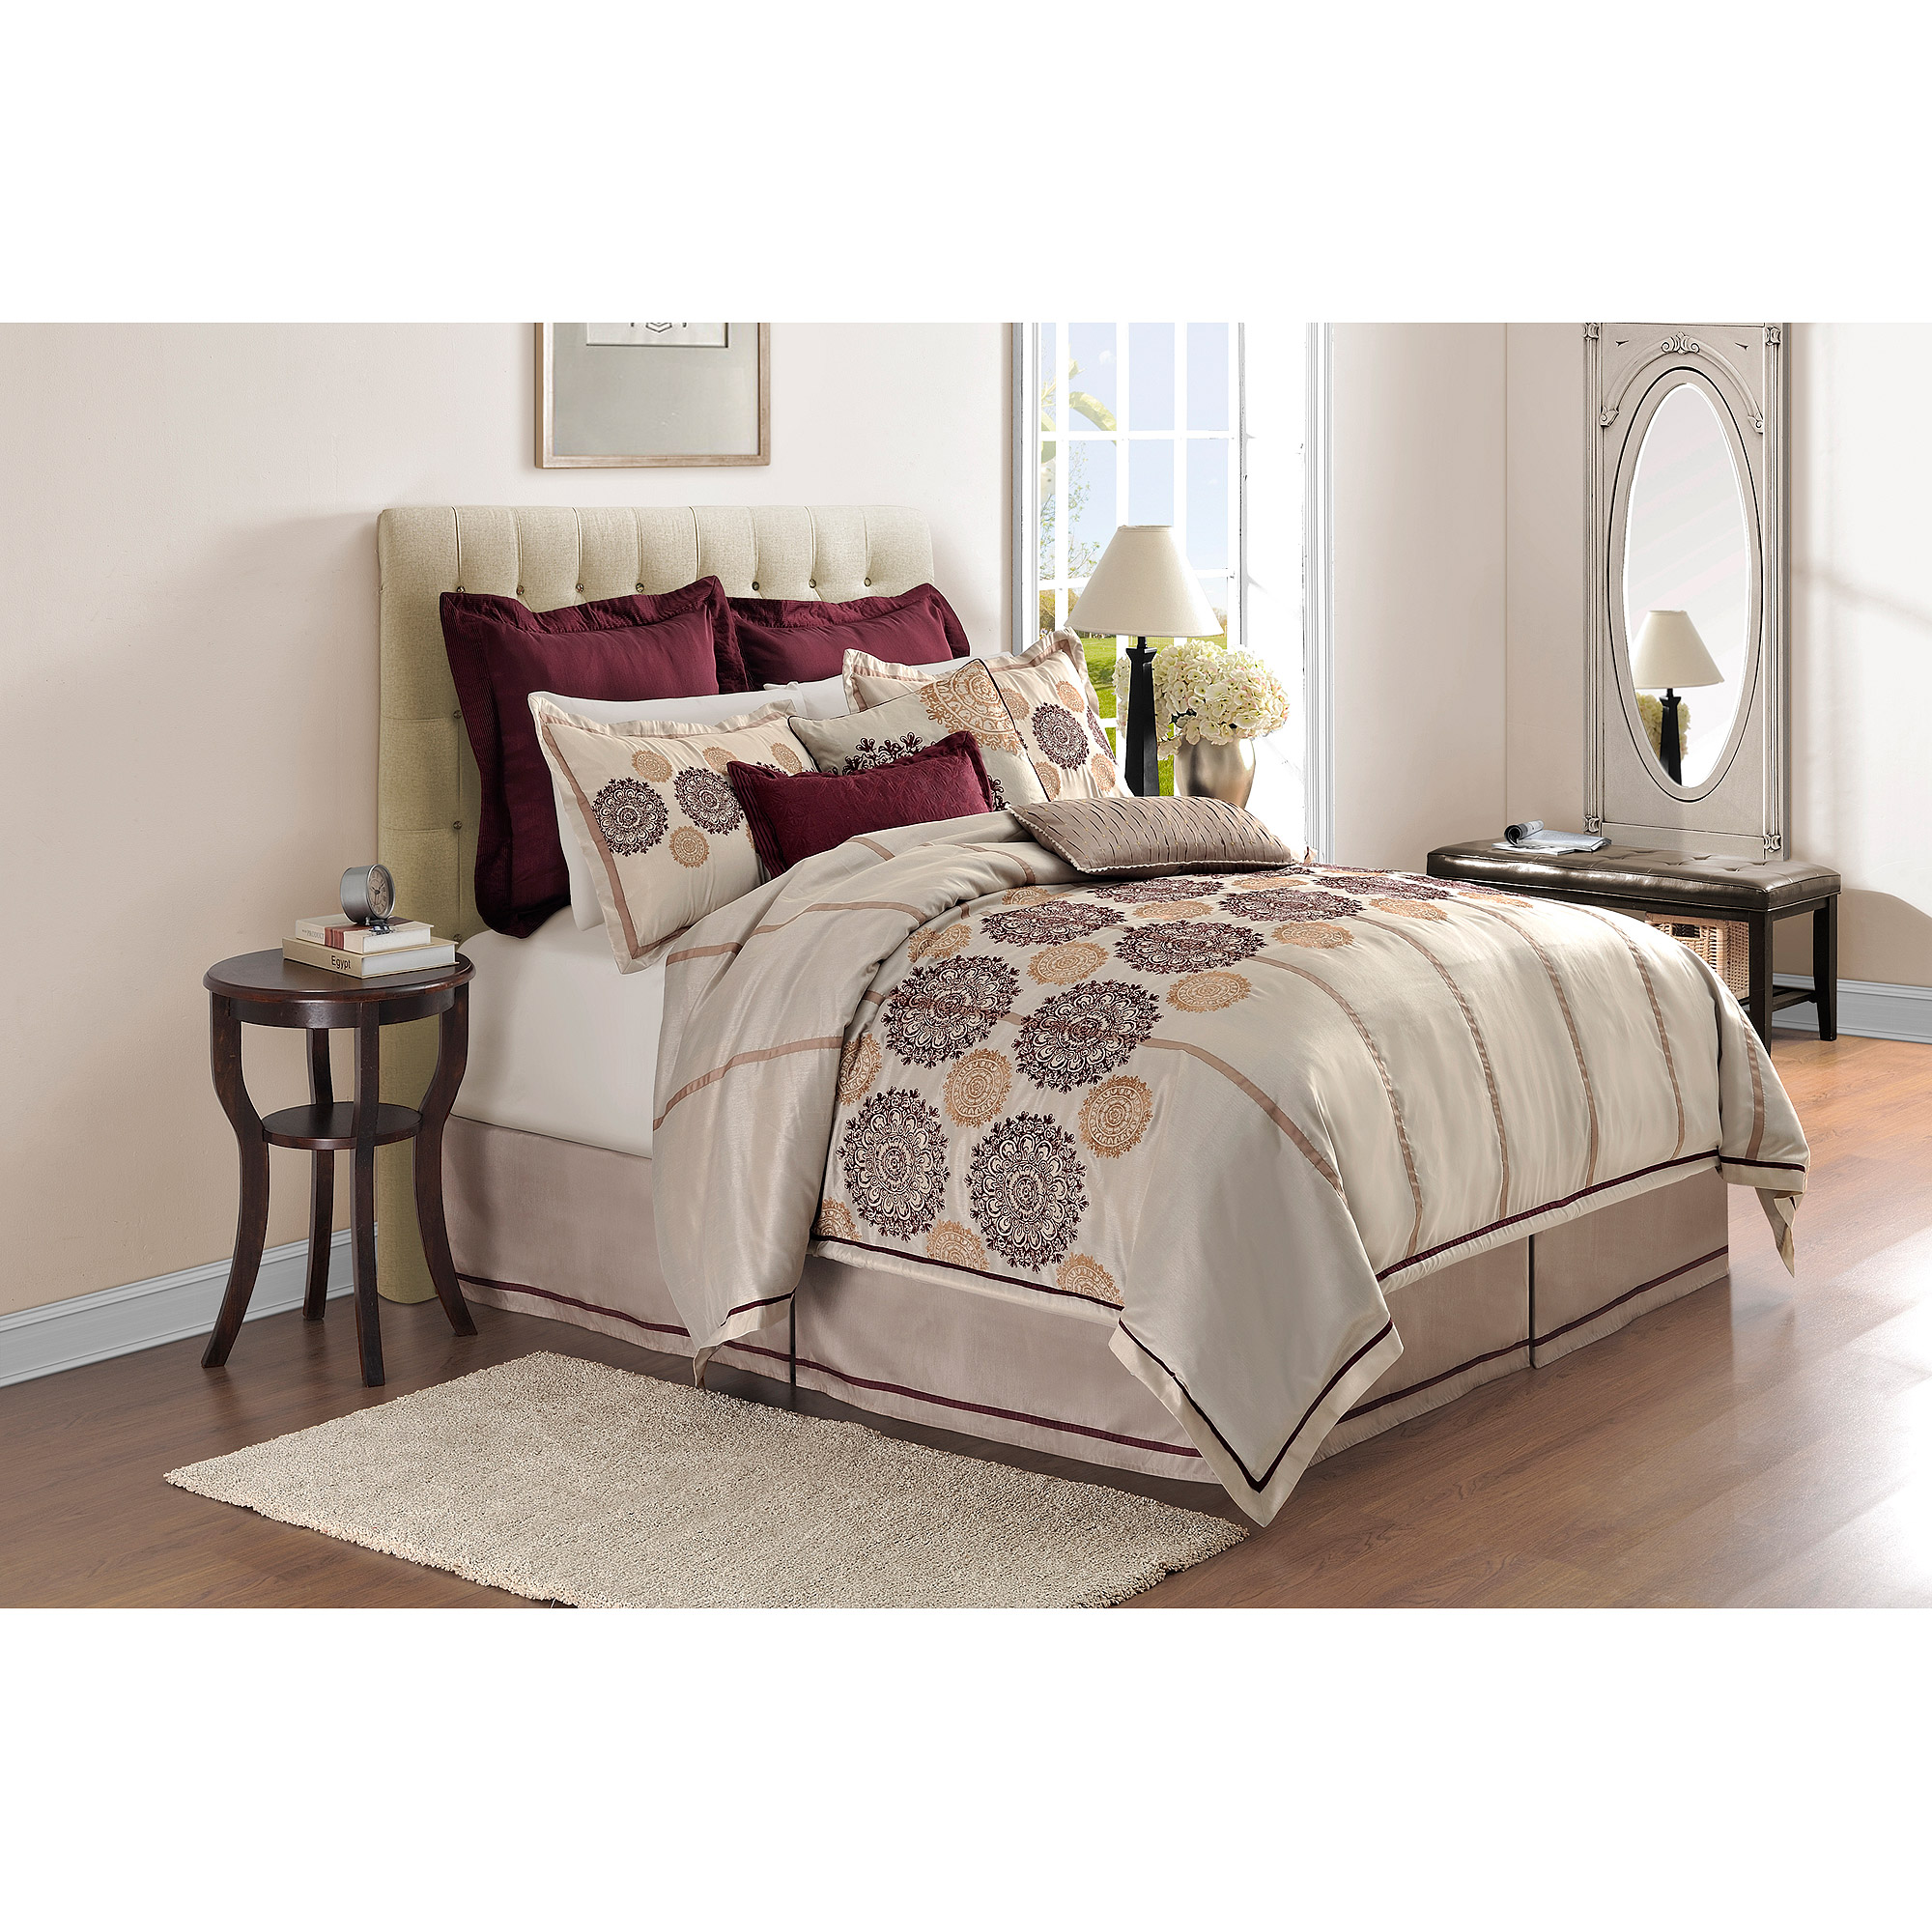 Image of Adorn Home Colette 4-Piece Bedding Comforter Set